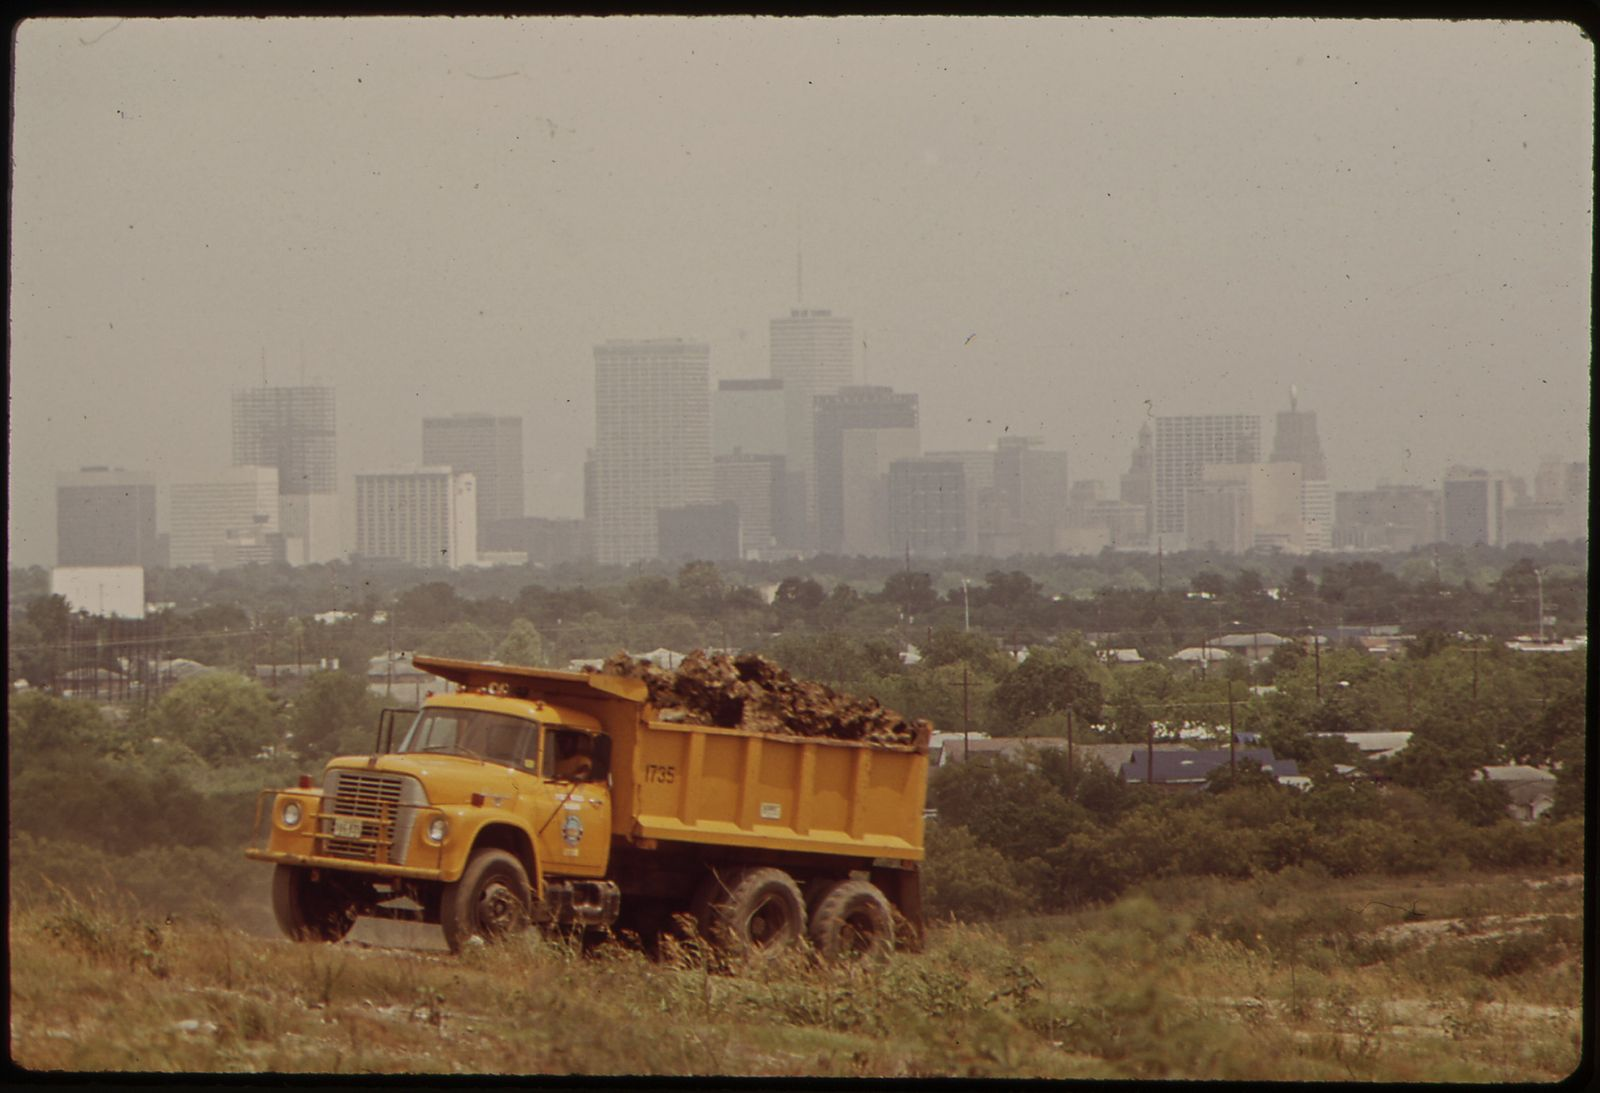 Houston, 1970. Just like in Chicago, most dumps in the city of Houston, both legal and illegal, were in Black neighborhoods, like this one in the Sunnyside neighborhood.